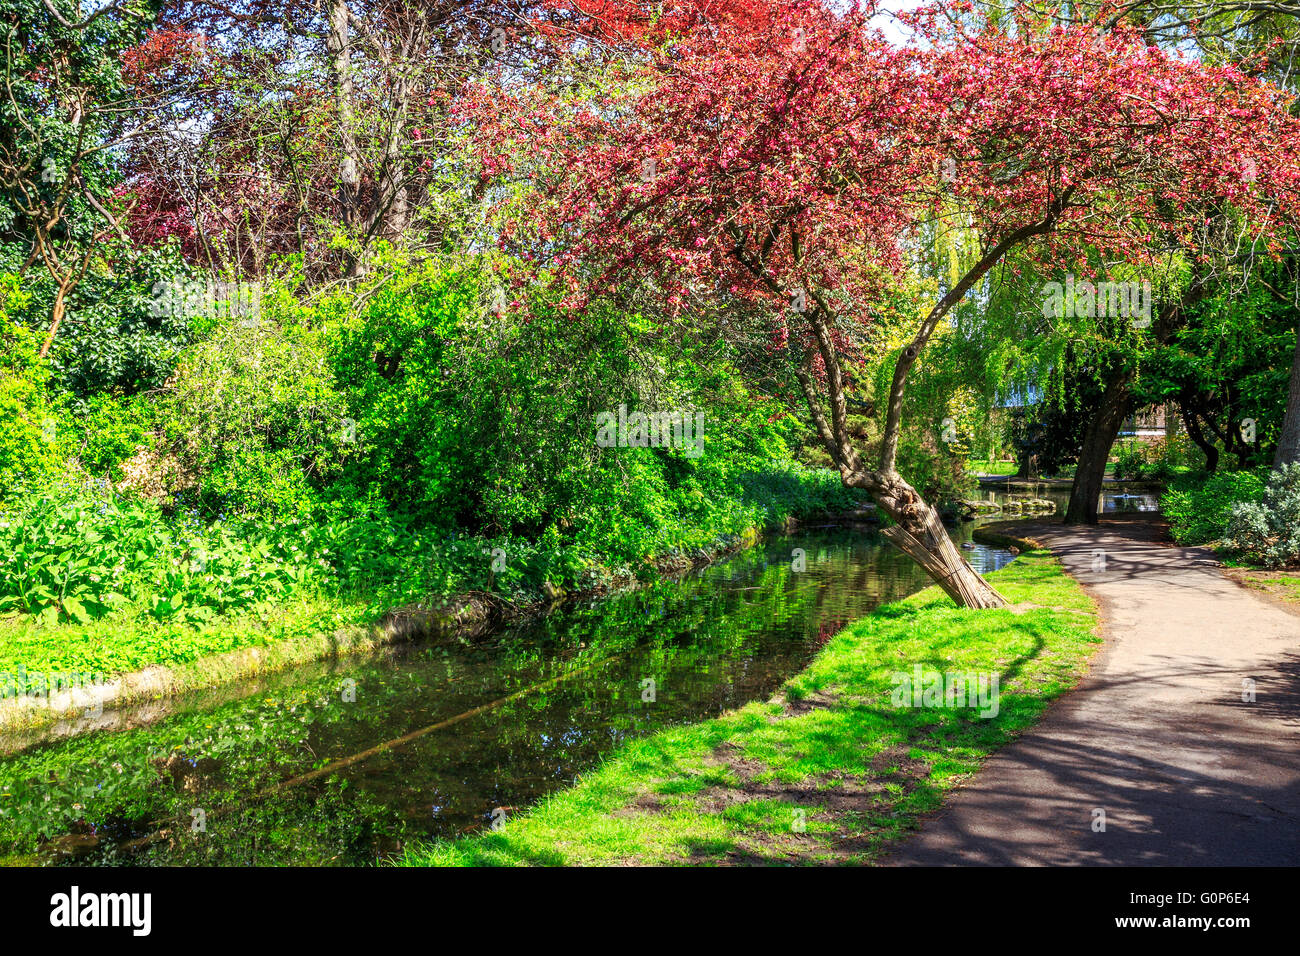 A tree with red leaves and other foliage in sunlight around the canal at the New River Walk, Canonbury, London - Stock Image